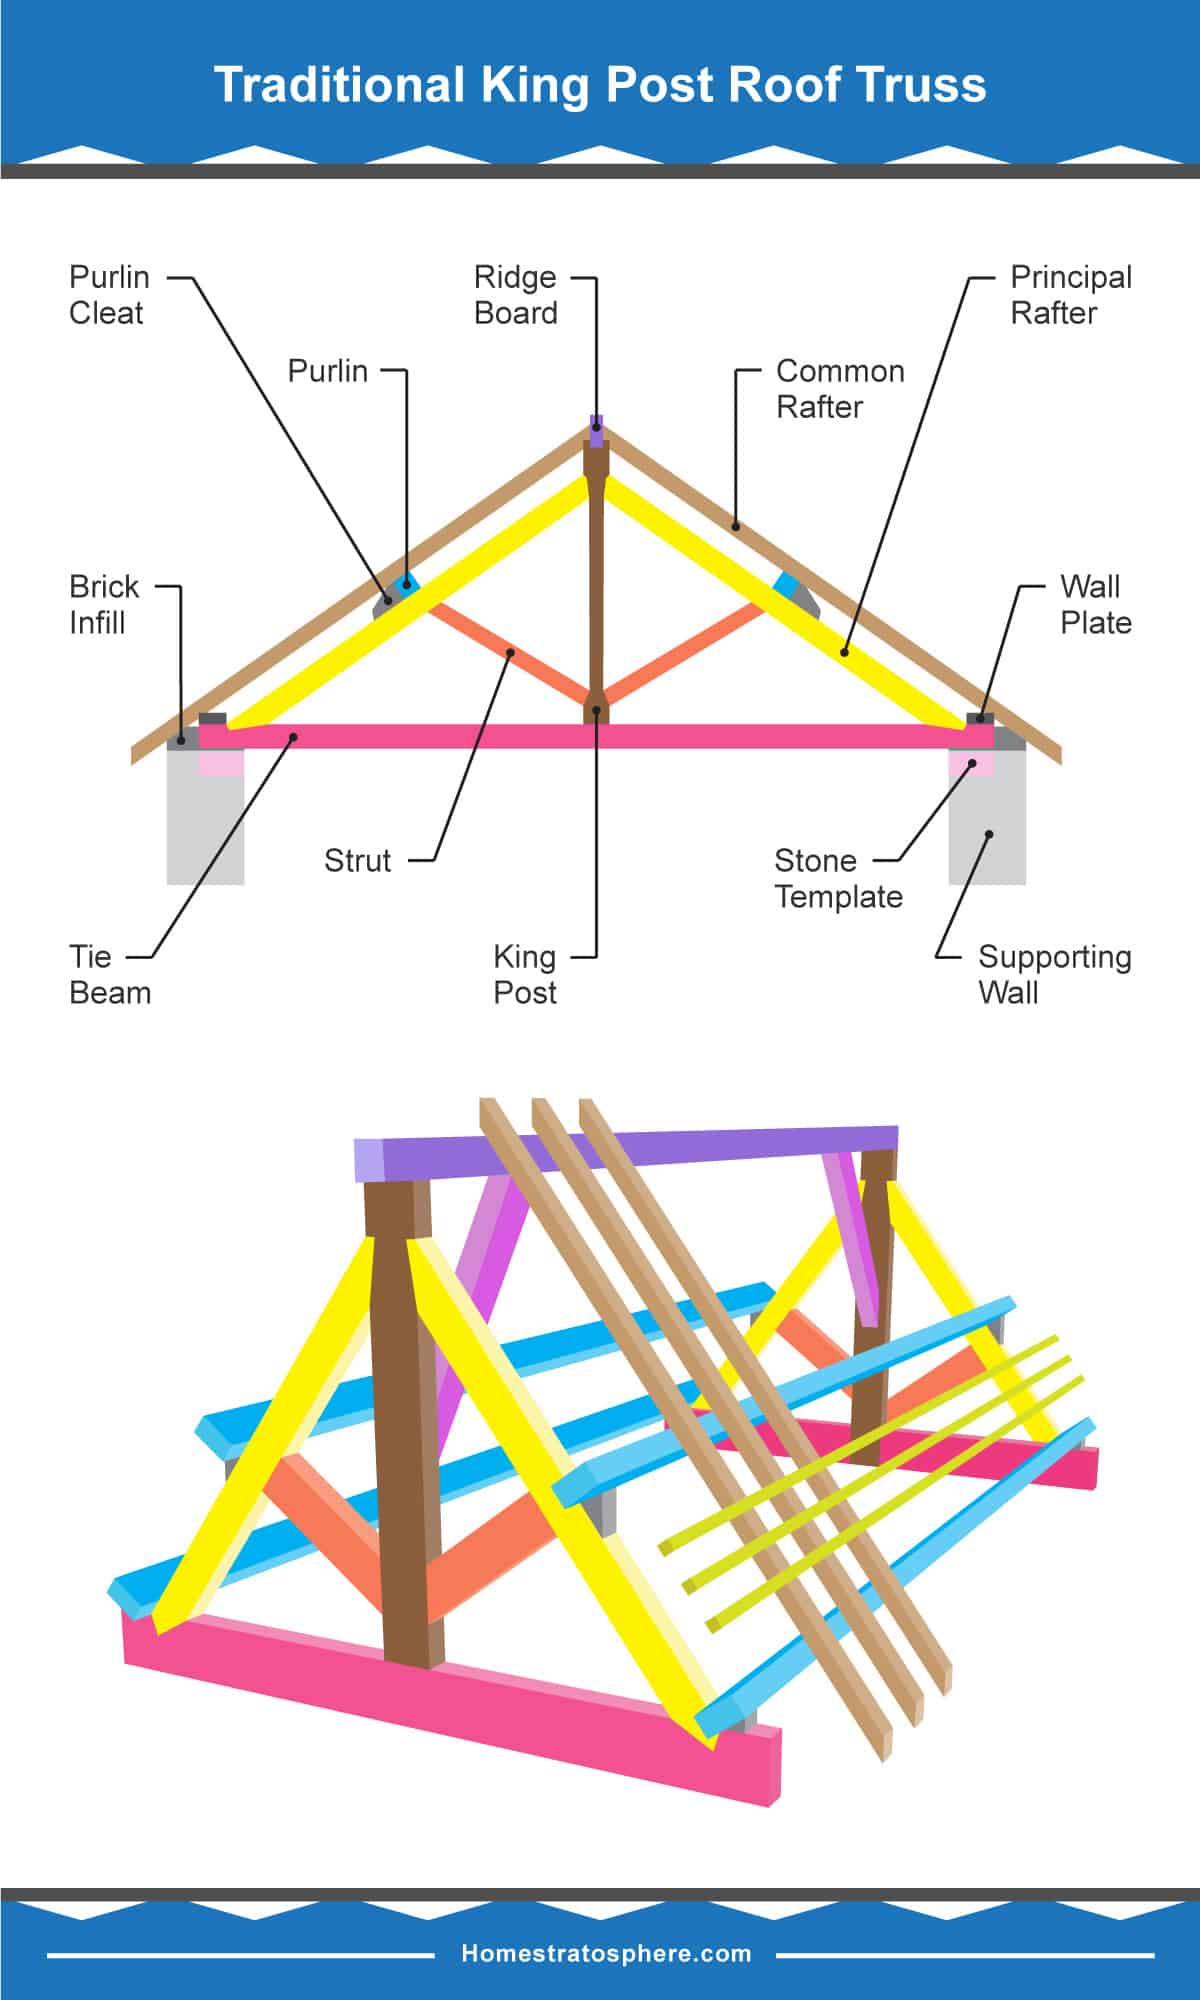 Diagram showing parts of a king post roof truss